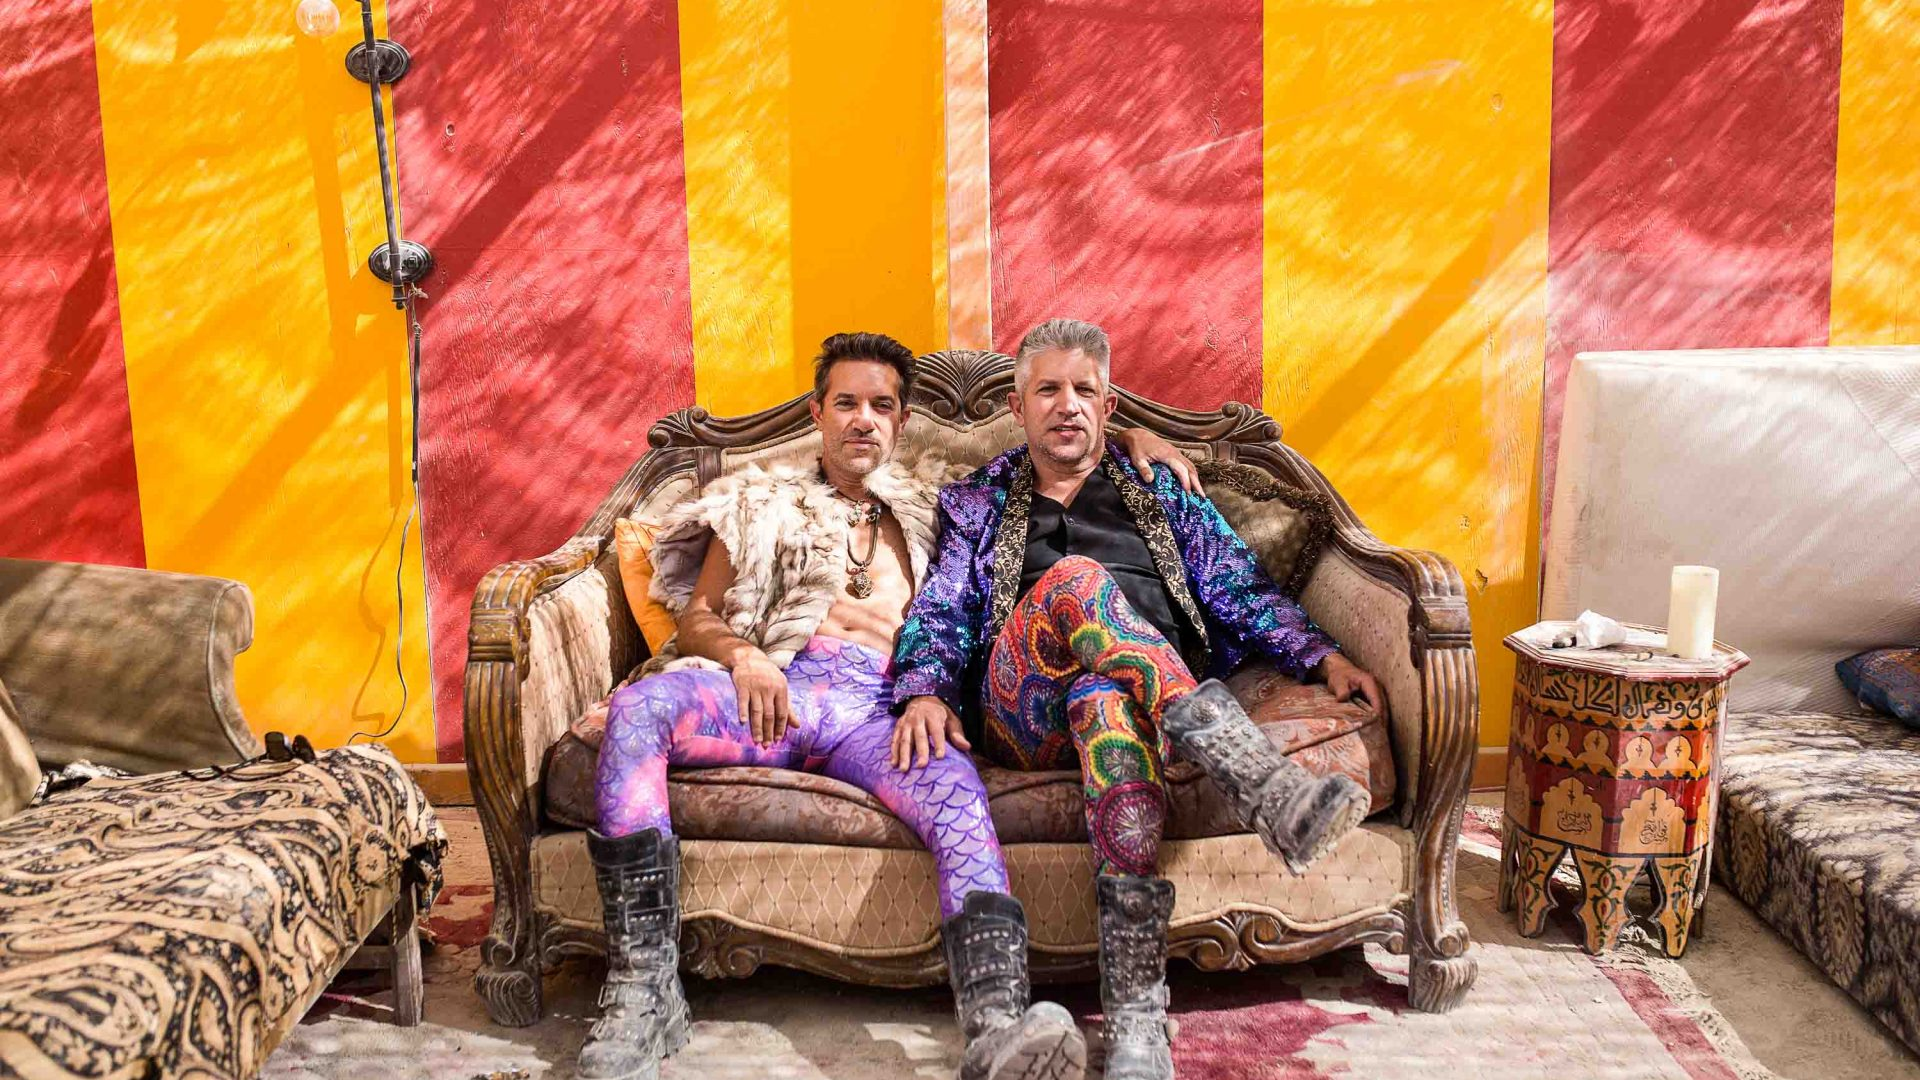 Rowan and Gordon Farber at their camp at Burning Man.